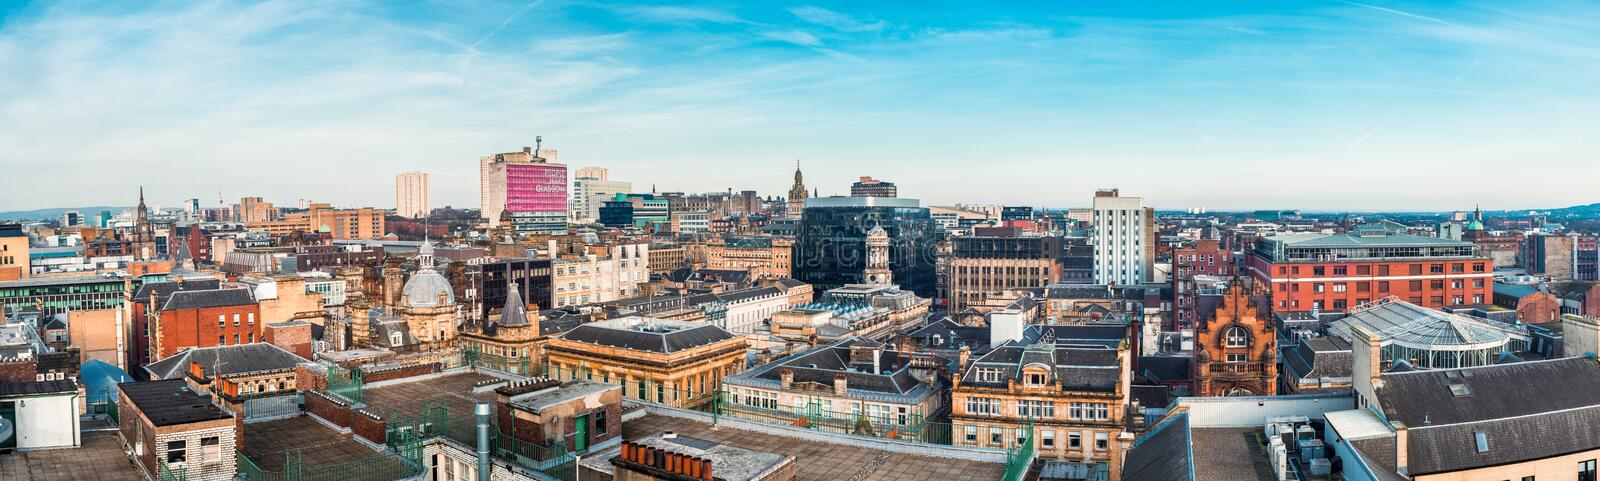 A wide stitched panoramic looking out over buildings in Glasgow city centre, Scotland royalty free stock images